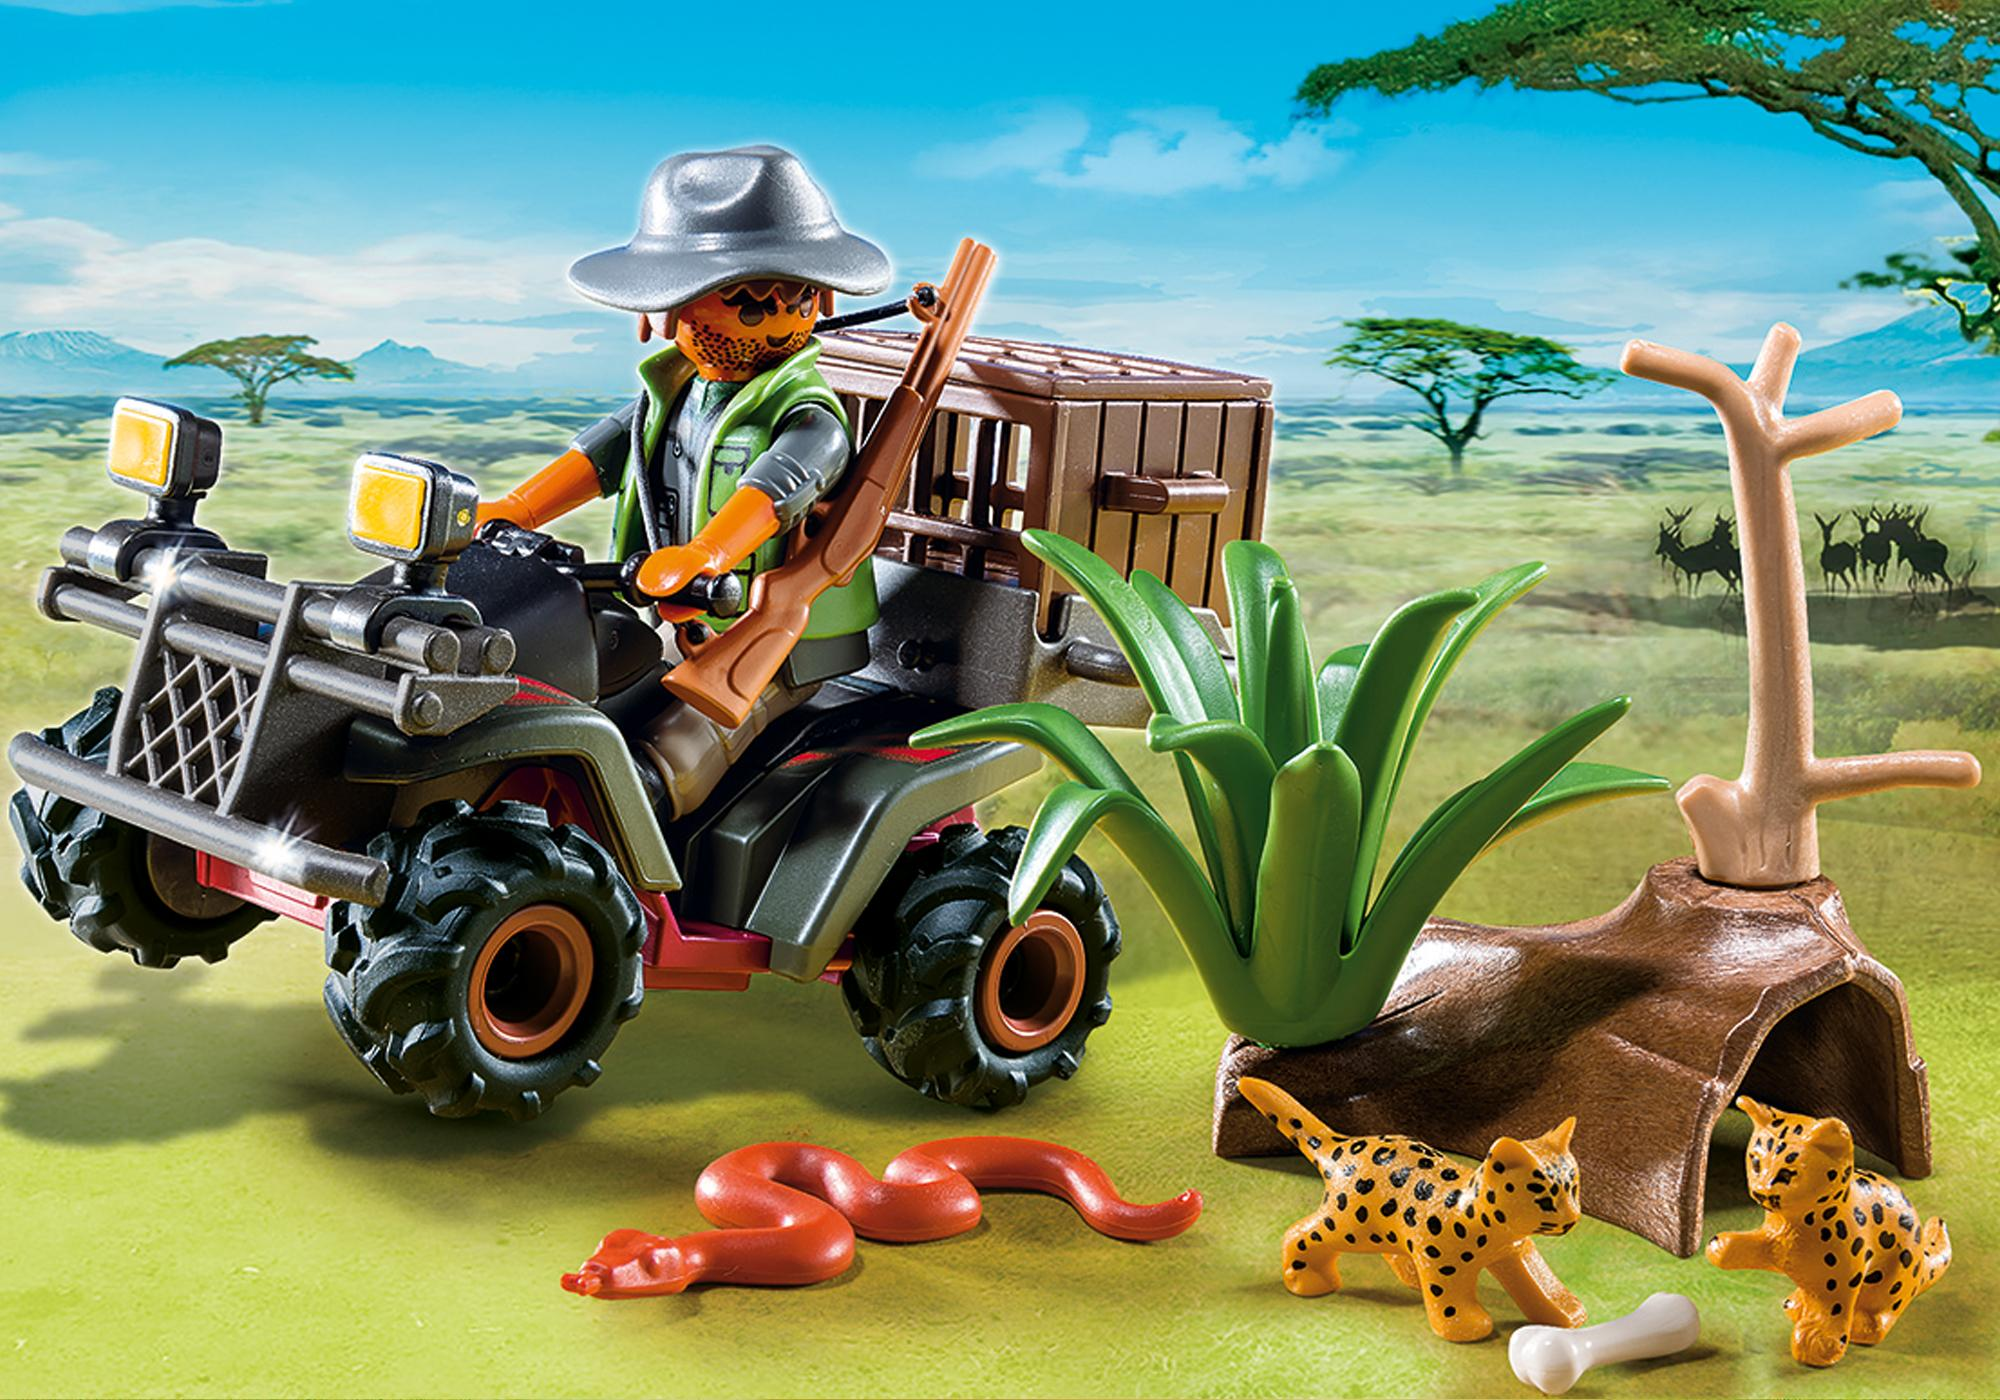 http://media.playmobil.com/i/playmobil/6939_product_detail